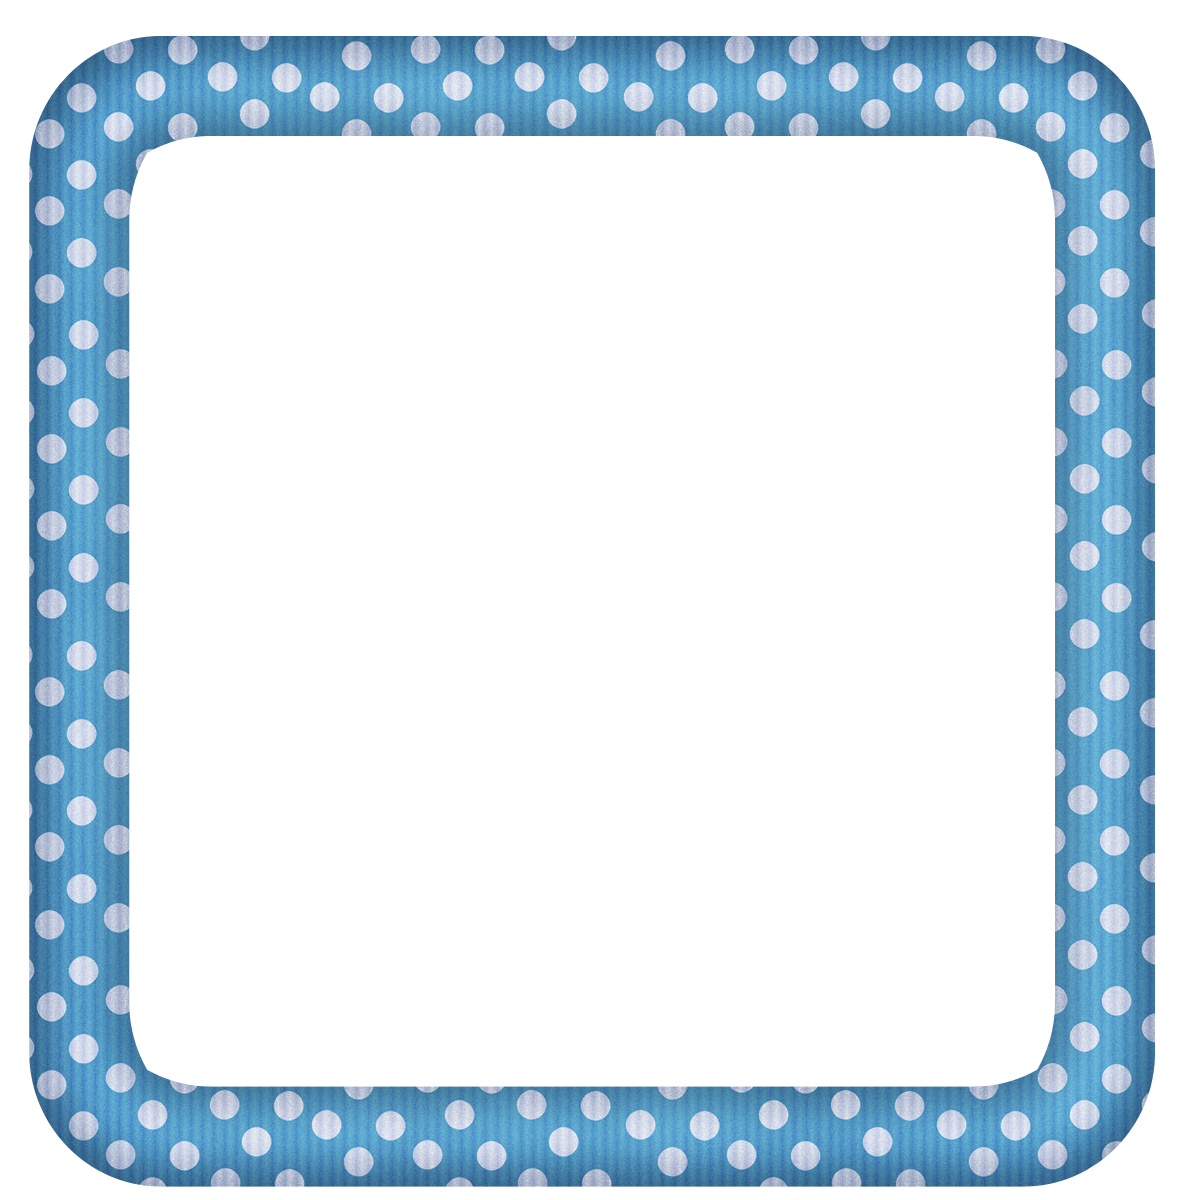 Electricity clipart frame. Blue large transparent dotted